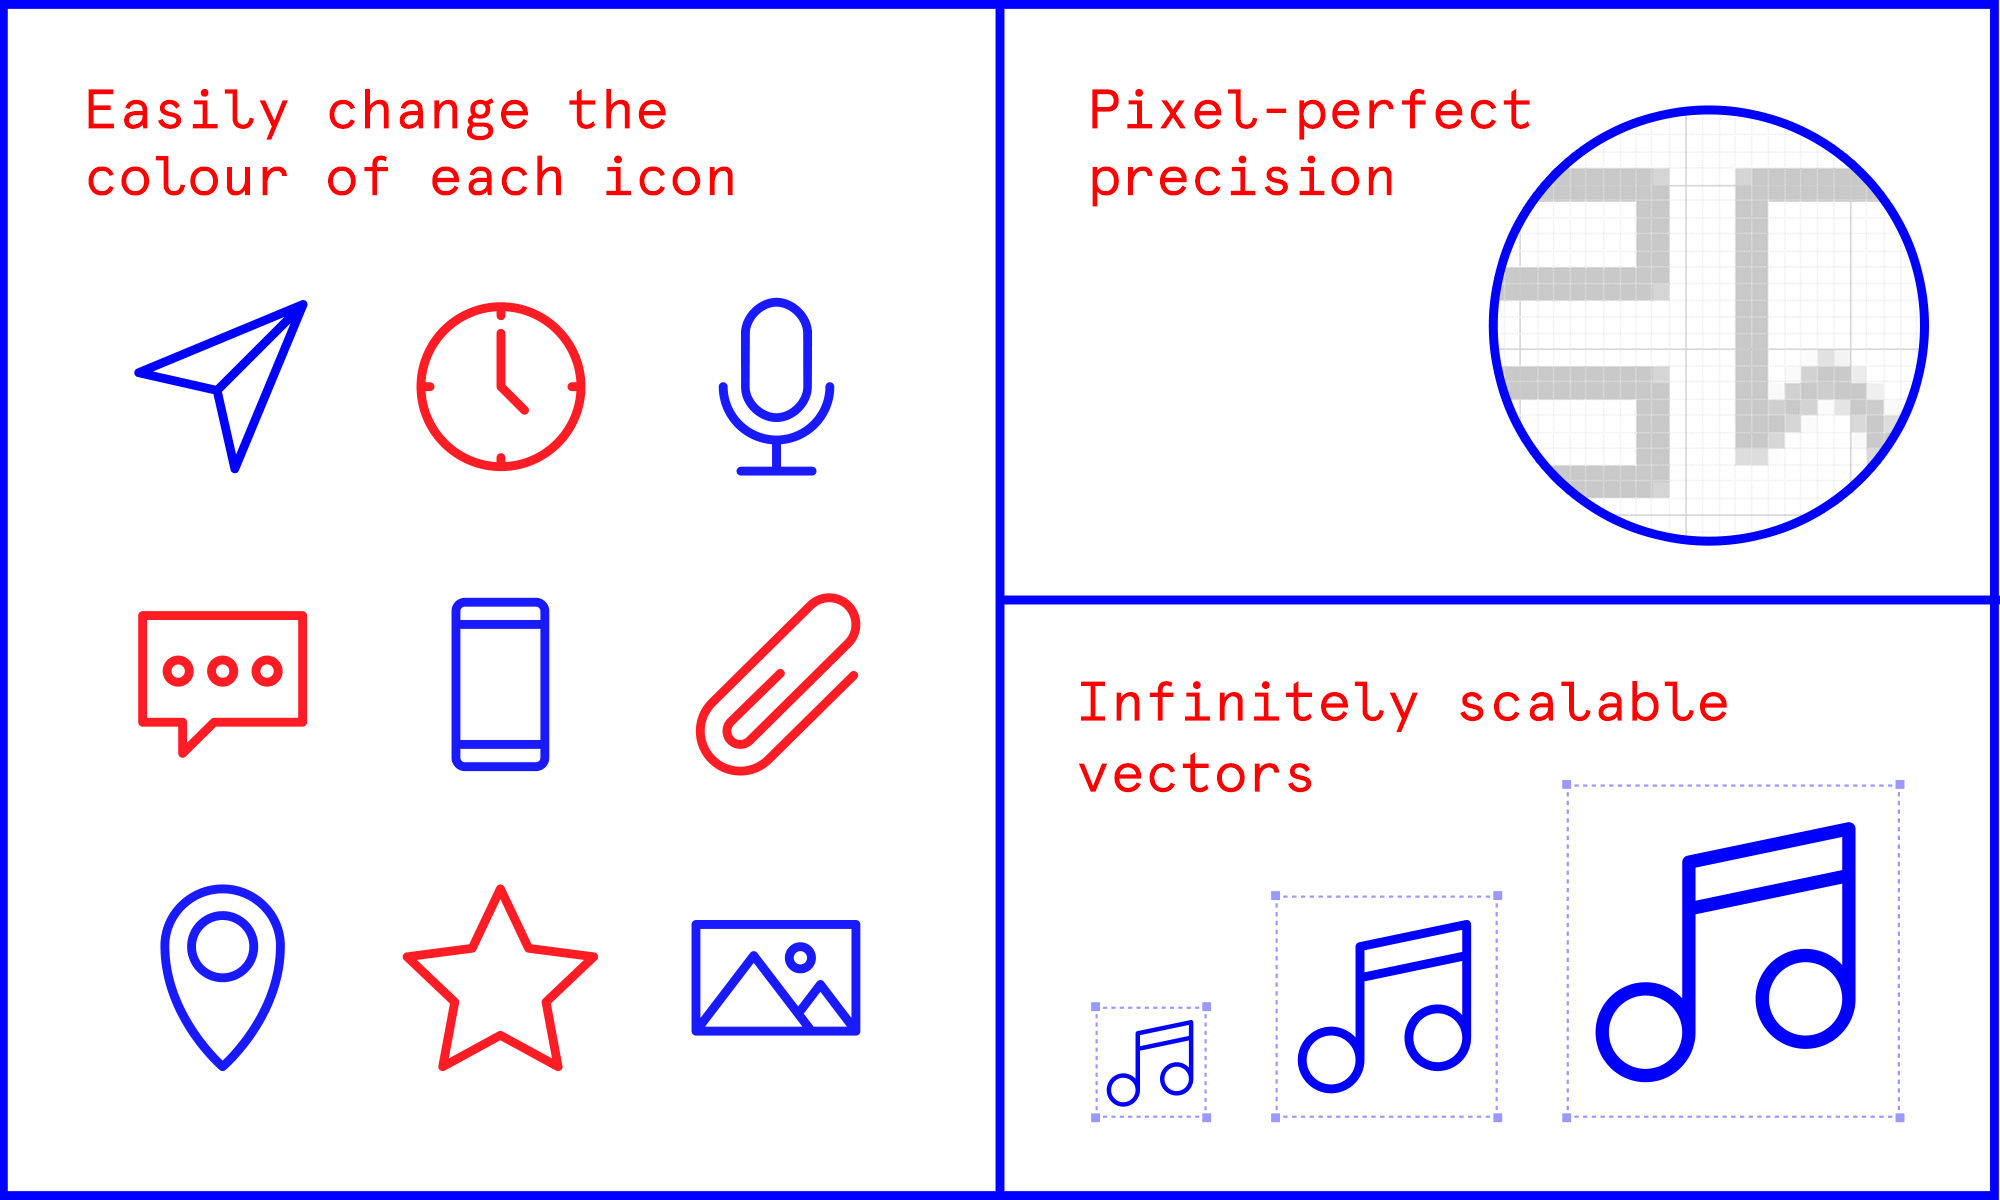 The icons are customisable and pixel-perfect